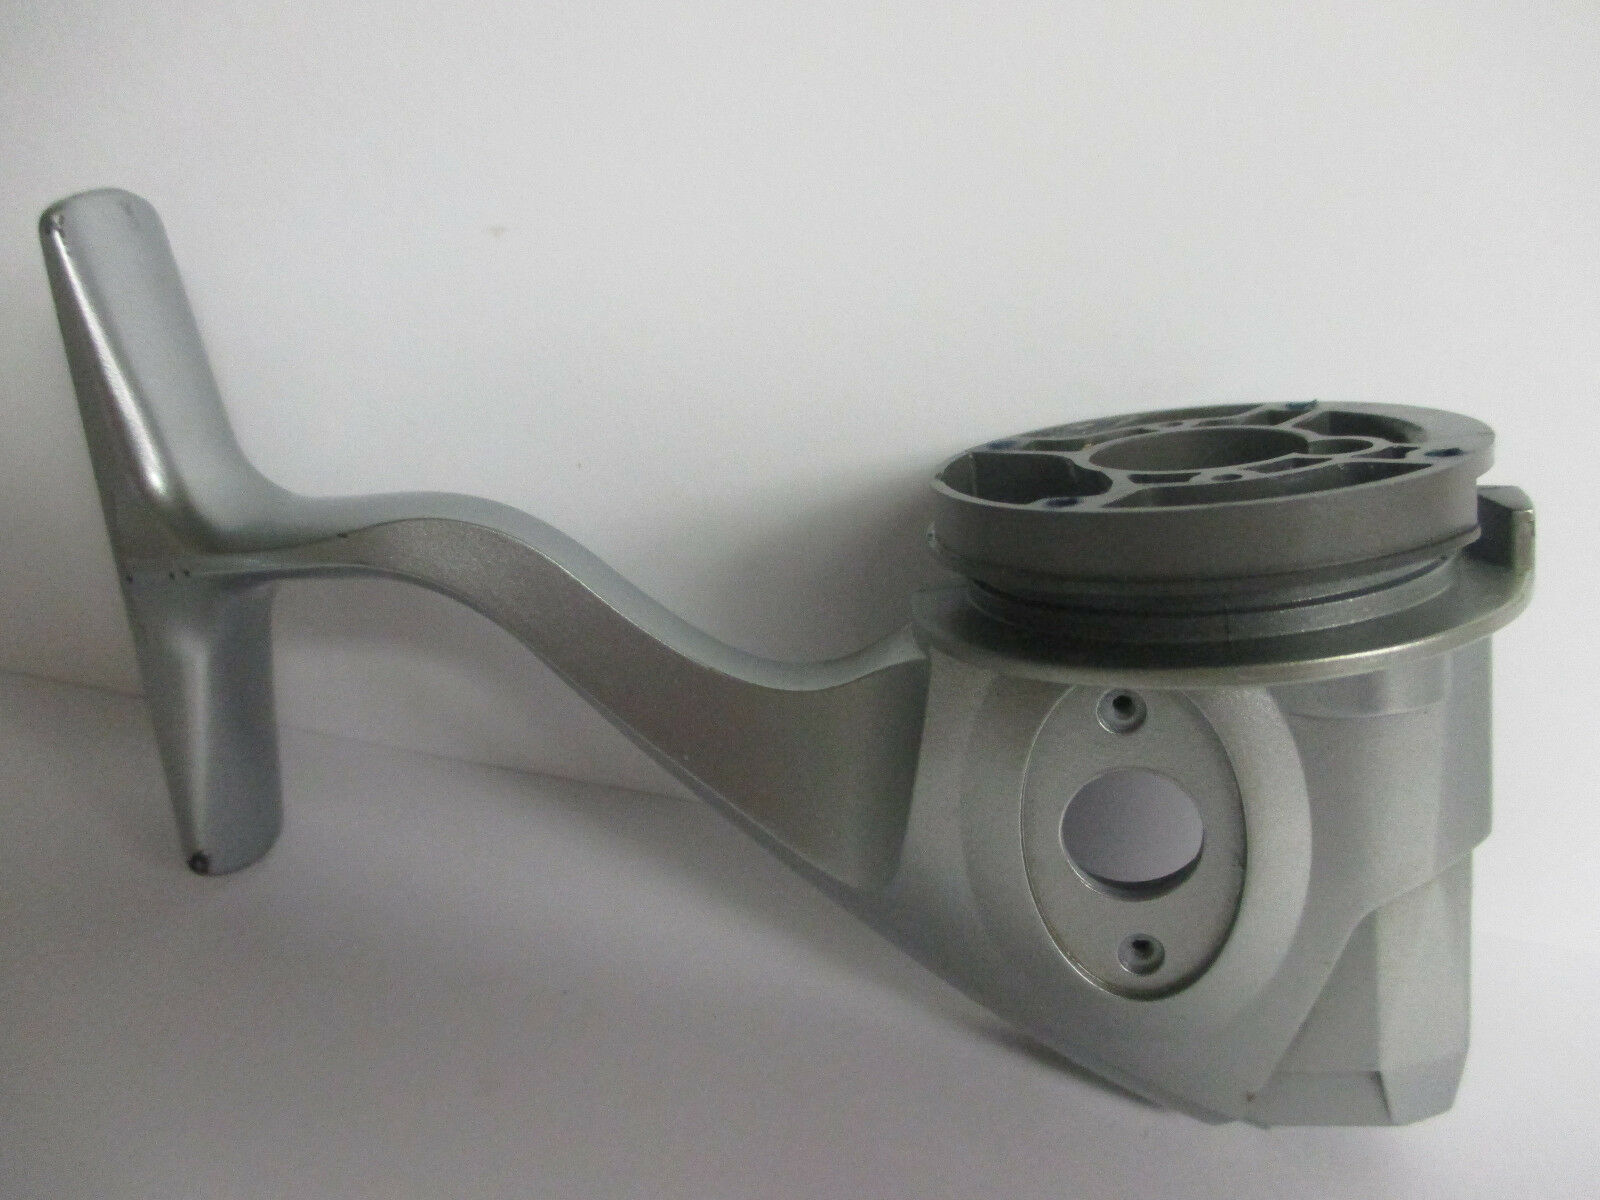 USED SHIMANO SPINNING REEL PART - Stella 6000F - Body